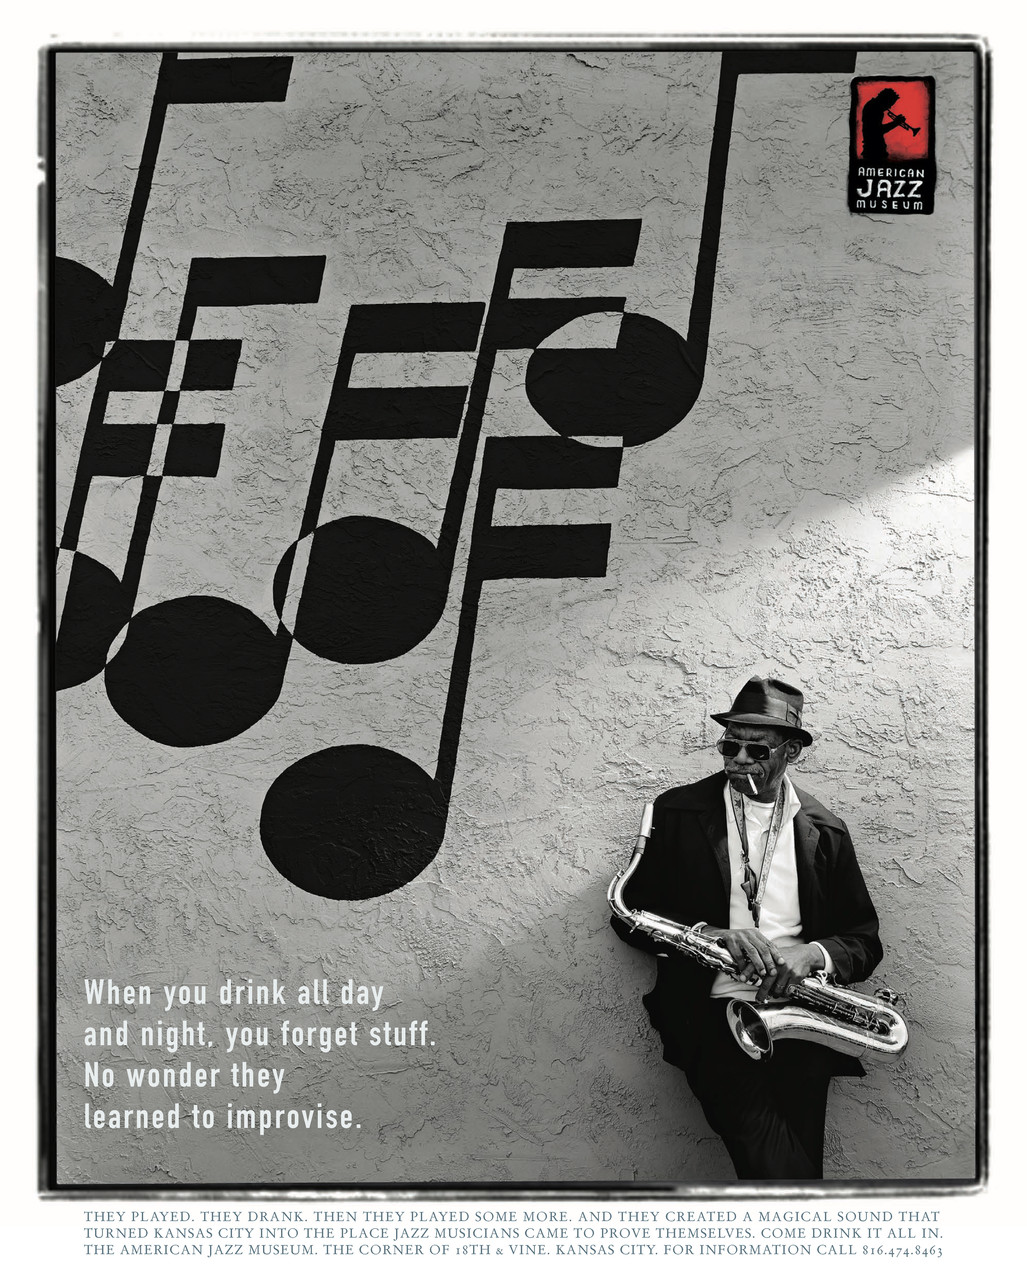 Poster for the American Jazz Museum in Kansas City.